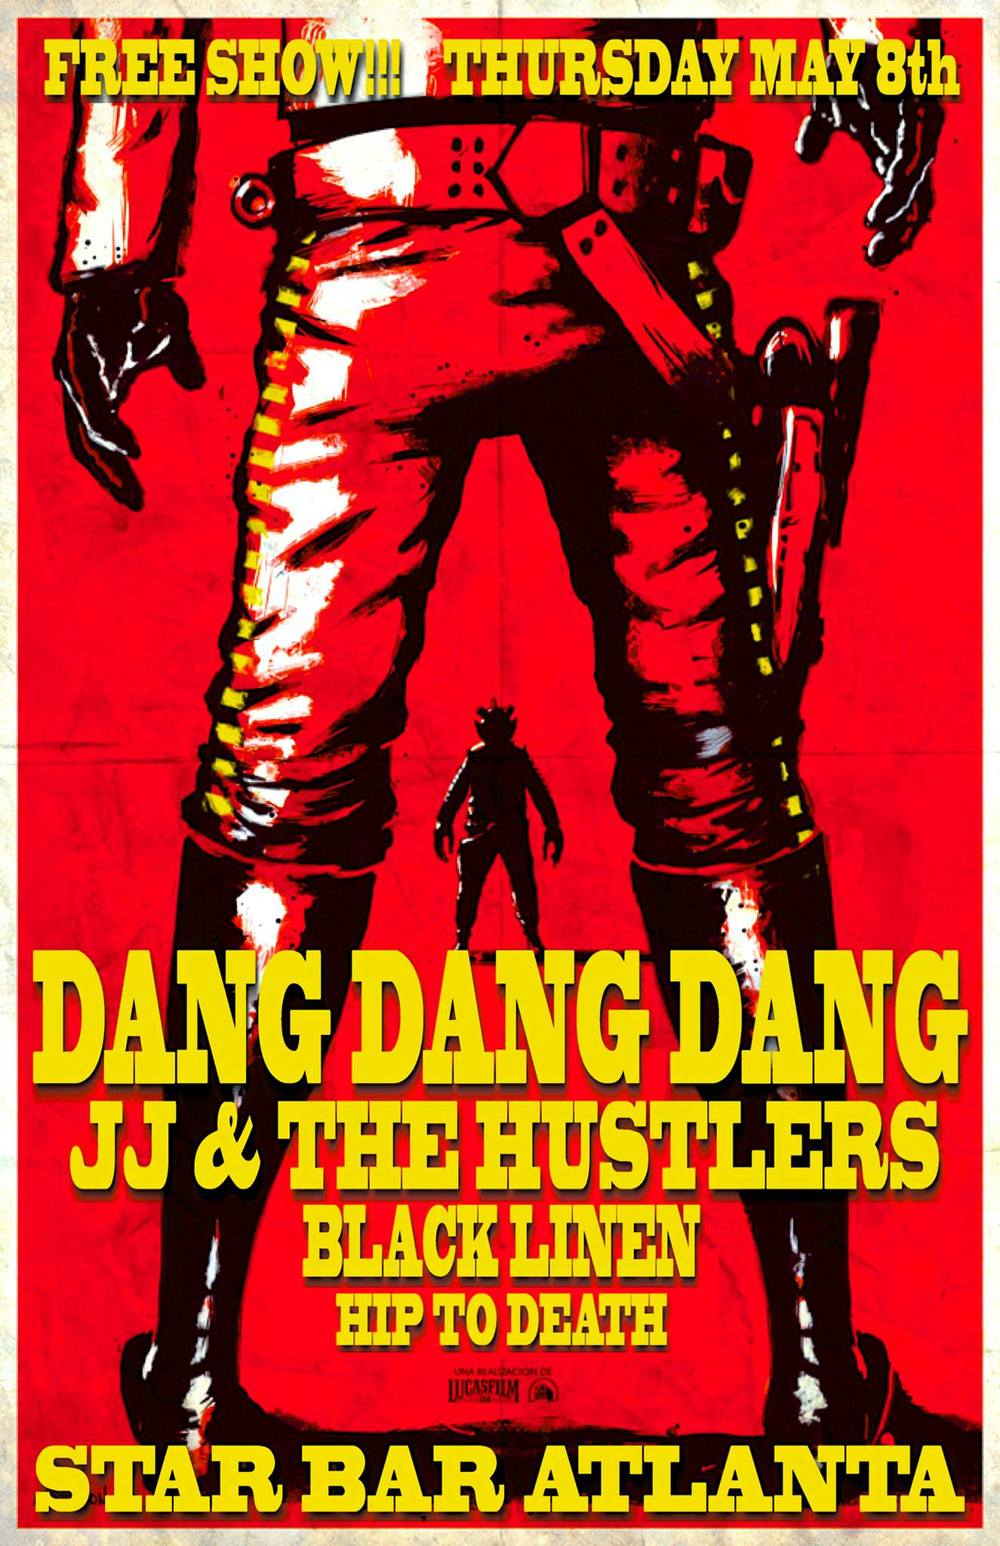 DANG DANG DANG ★ JJ & THE HUSTLERS ★ BLACK LINEN ★ HIP TO DEATH — May 8, 2014 — The Star Community Bar, Atlanta, GA